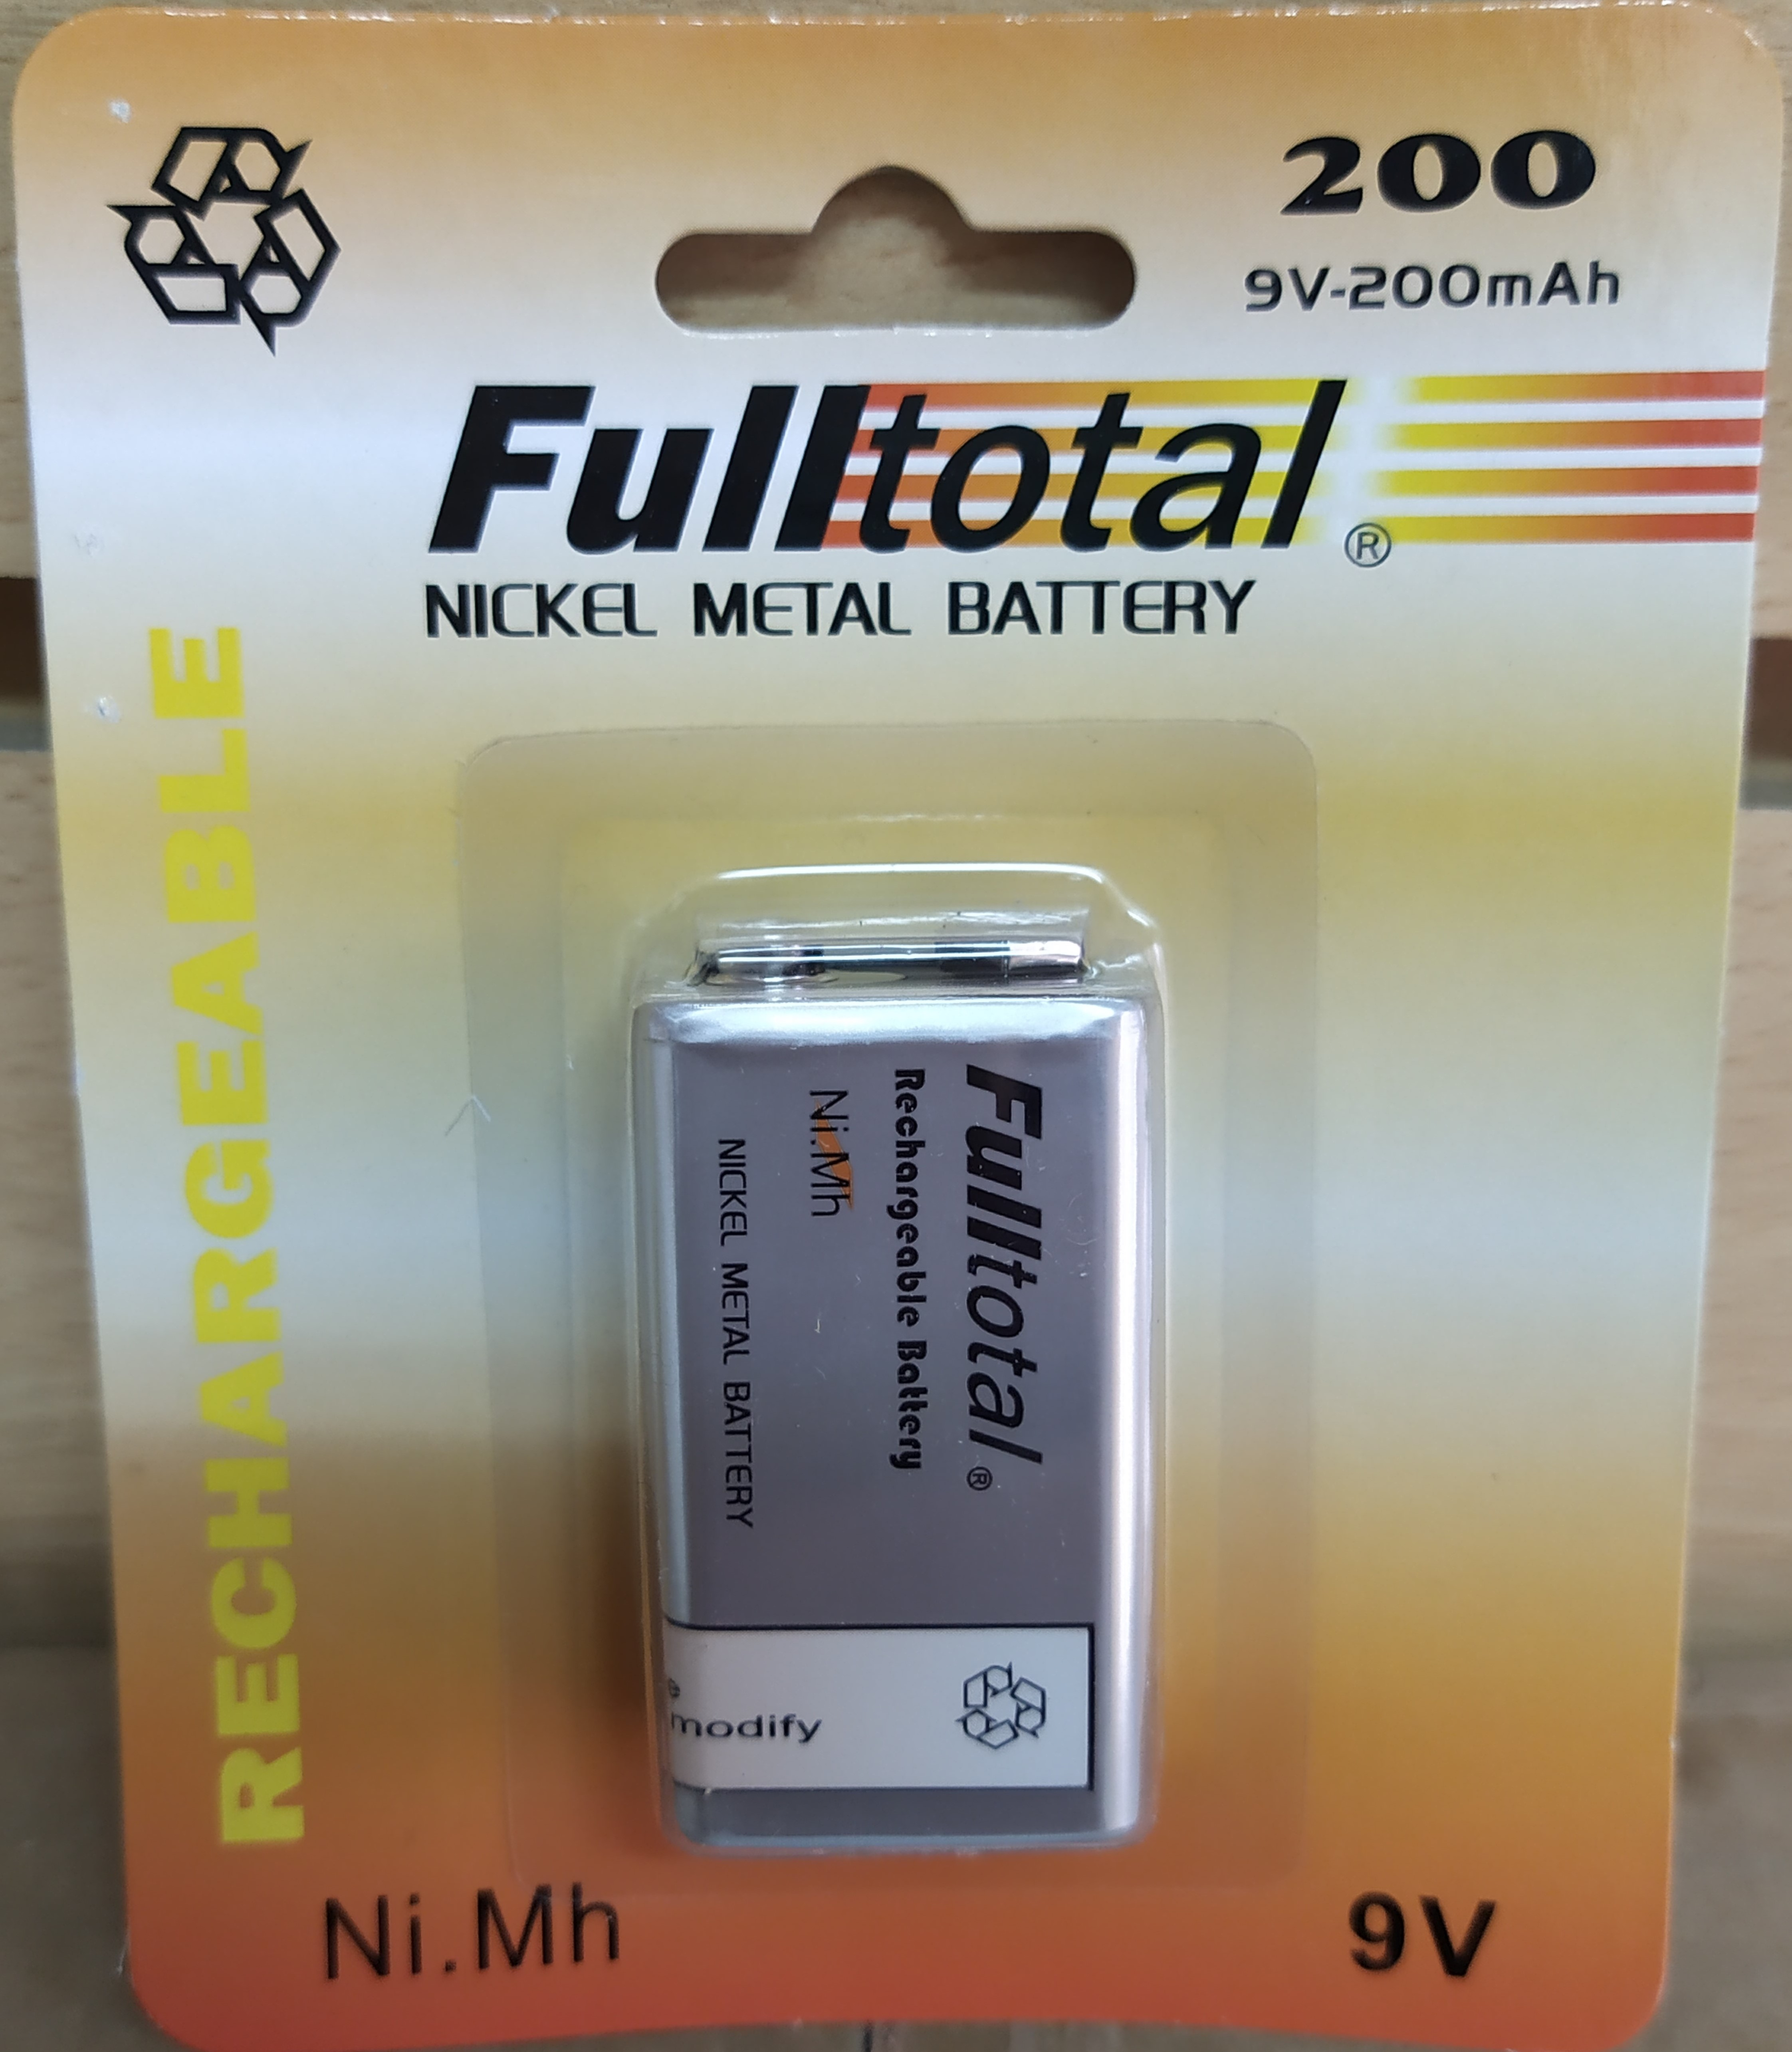 E16 PILA RECARGABLE 9V-200MAH FULL TOTAL